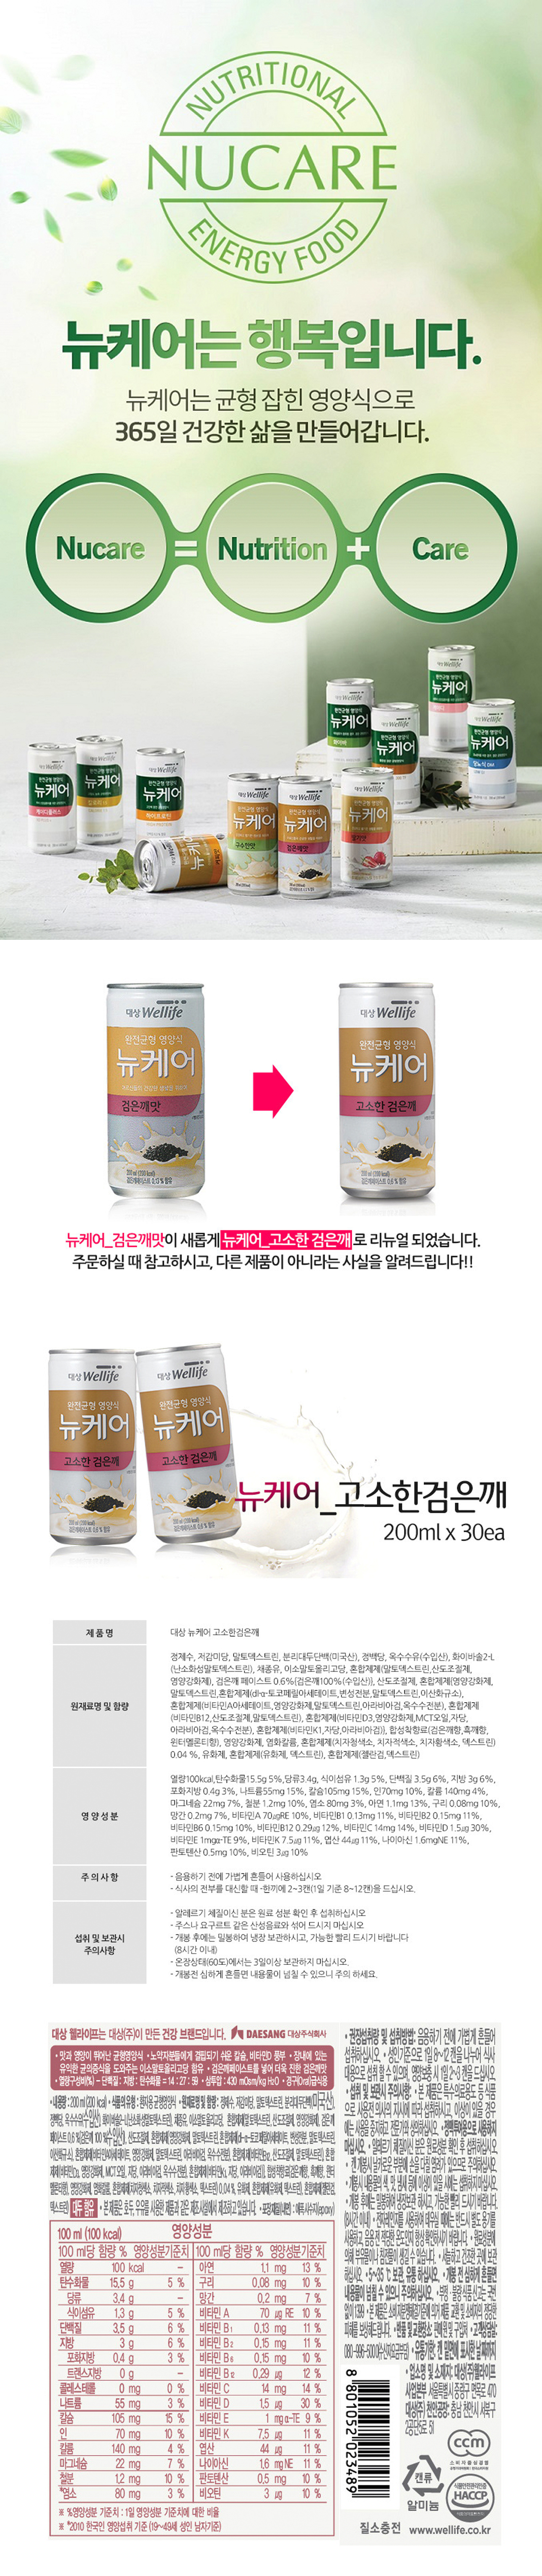 [ wellife ] NU-Care Black Sesame favor 200ml X 30